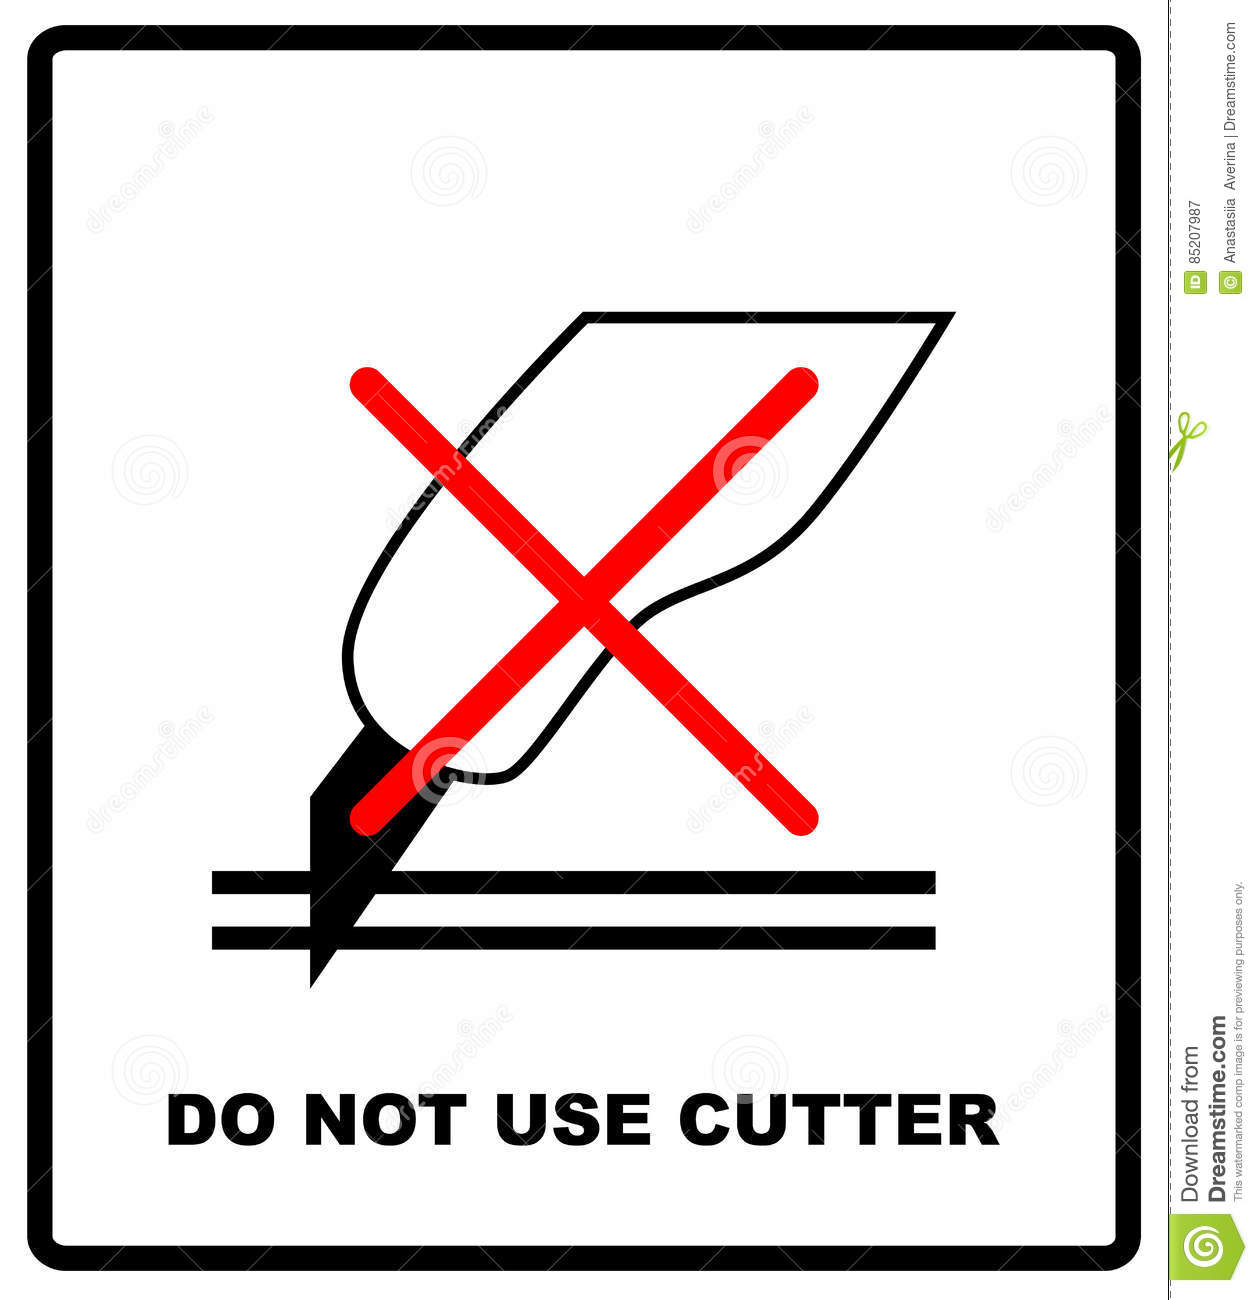 Do not use the cutter sign packaging signs or packaging symbols packaging signs or packaging symbols packaging symbol standard and care pack vector biocorpaavc Gallery